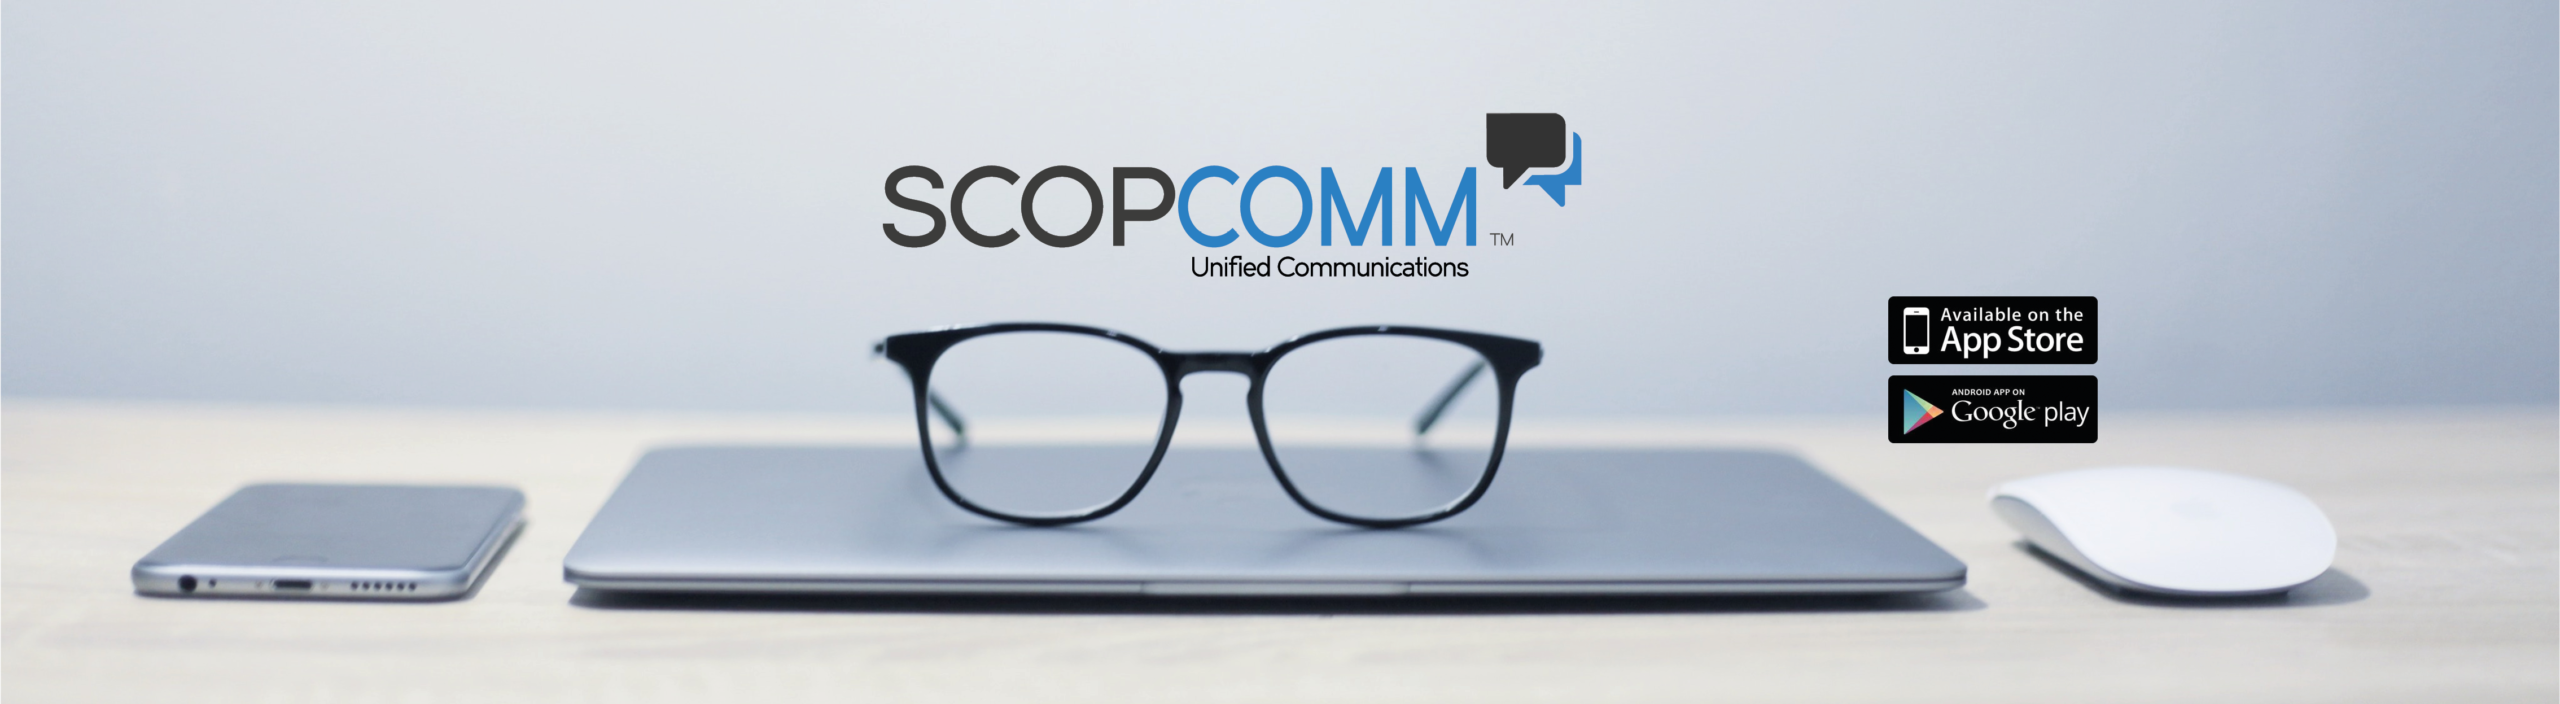 SCOPCOMM_APPLICATION_UNIFIEDCOMMUNICATION